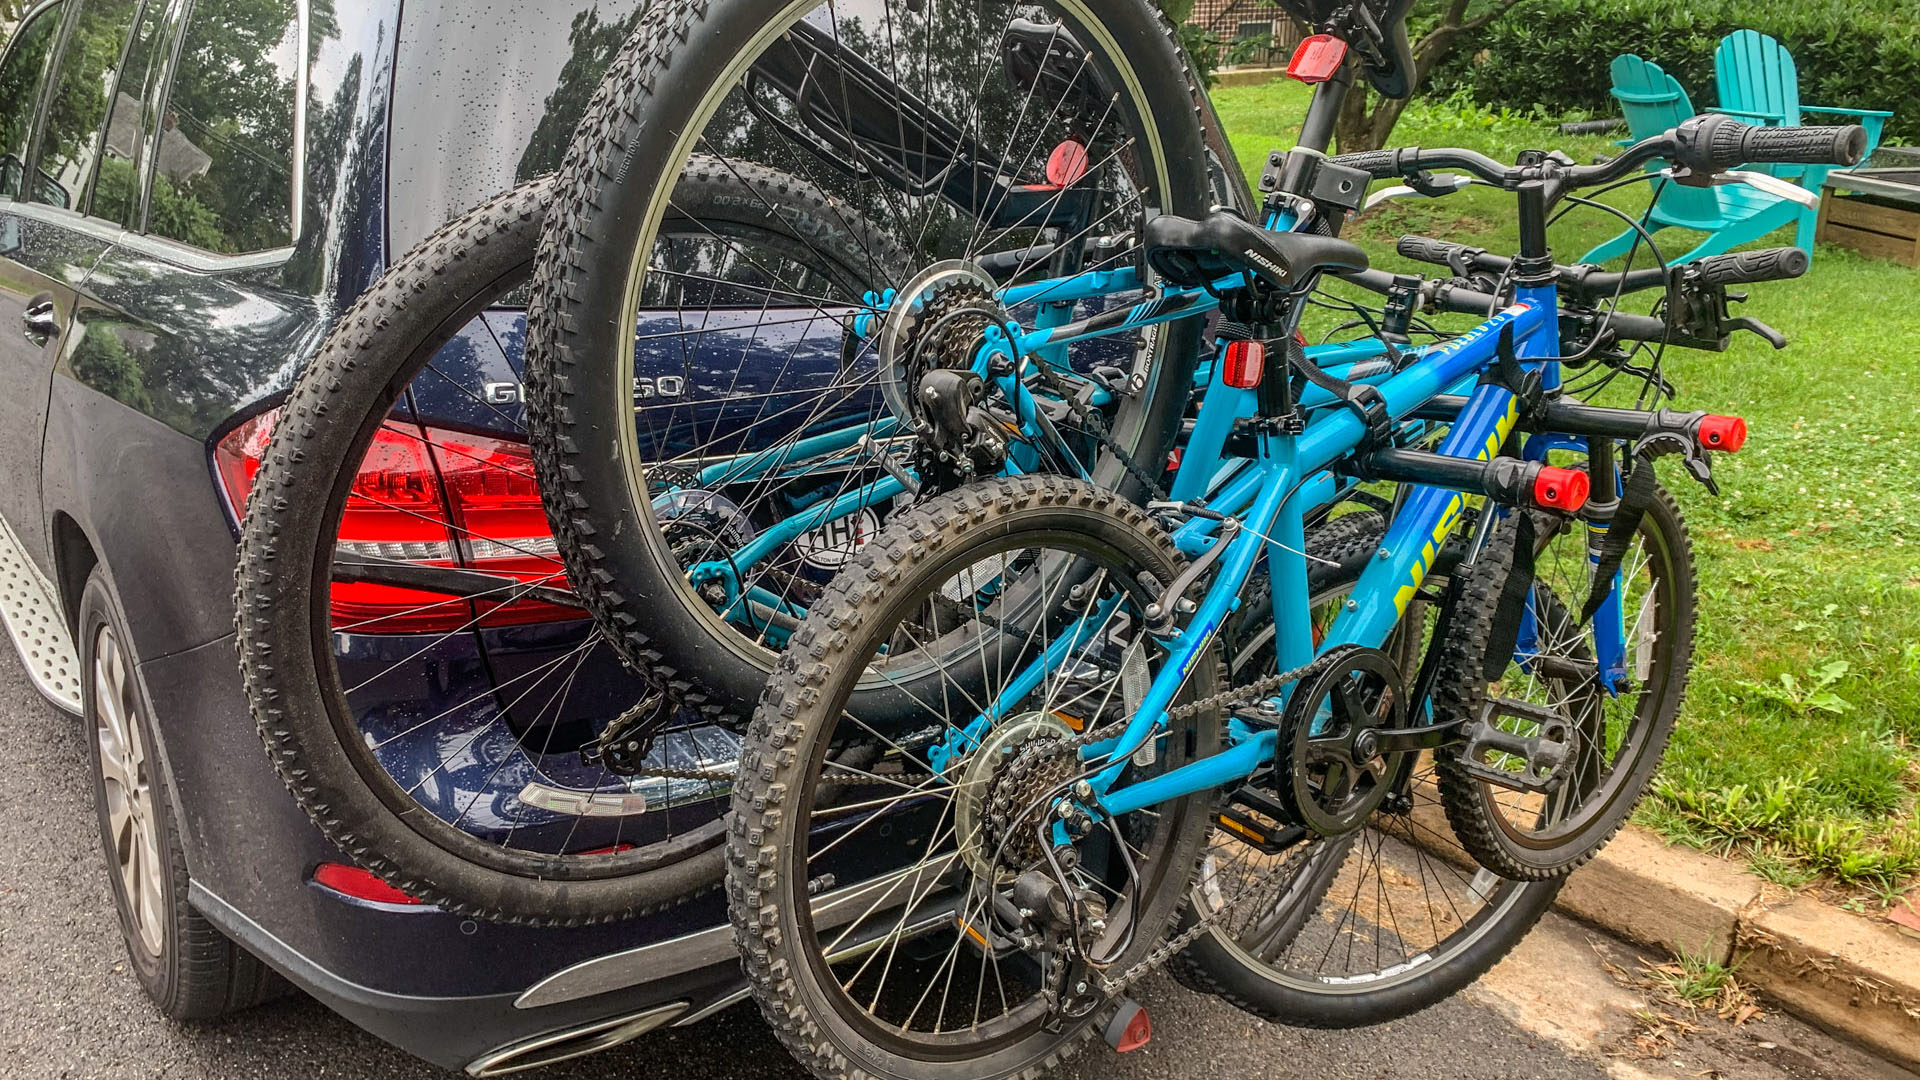 The Allen Sport rack loaded with bikes.